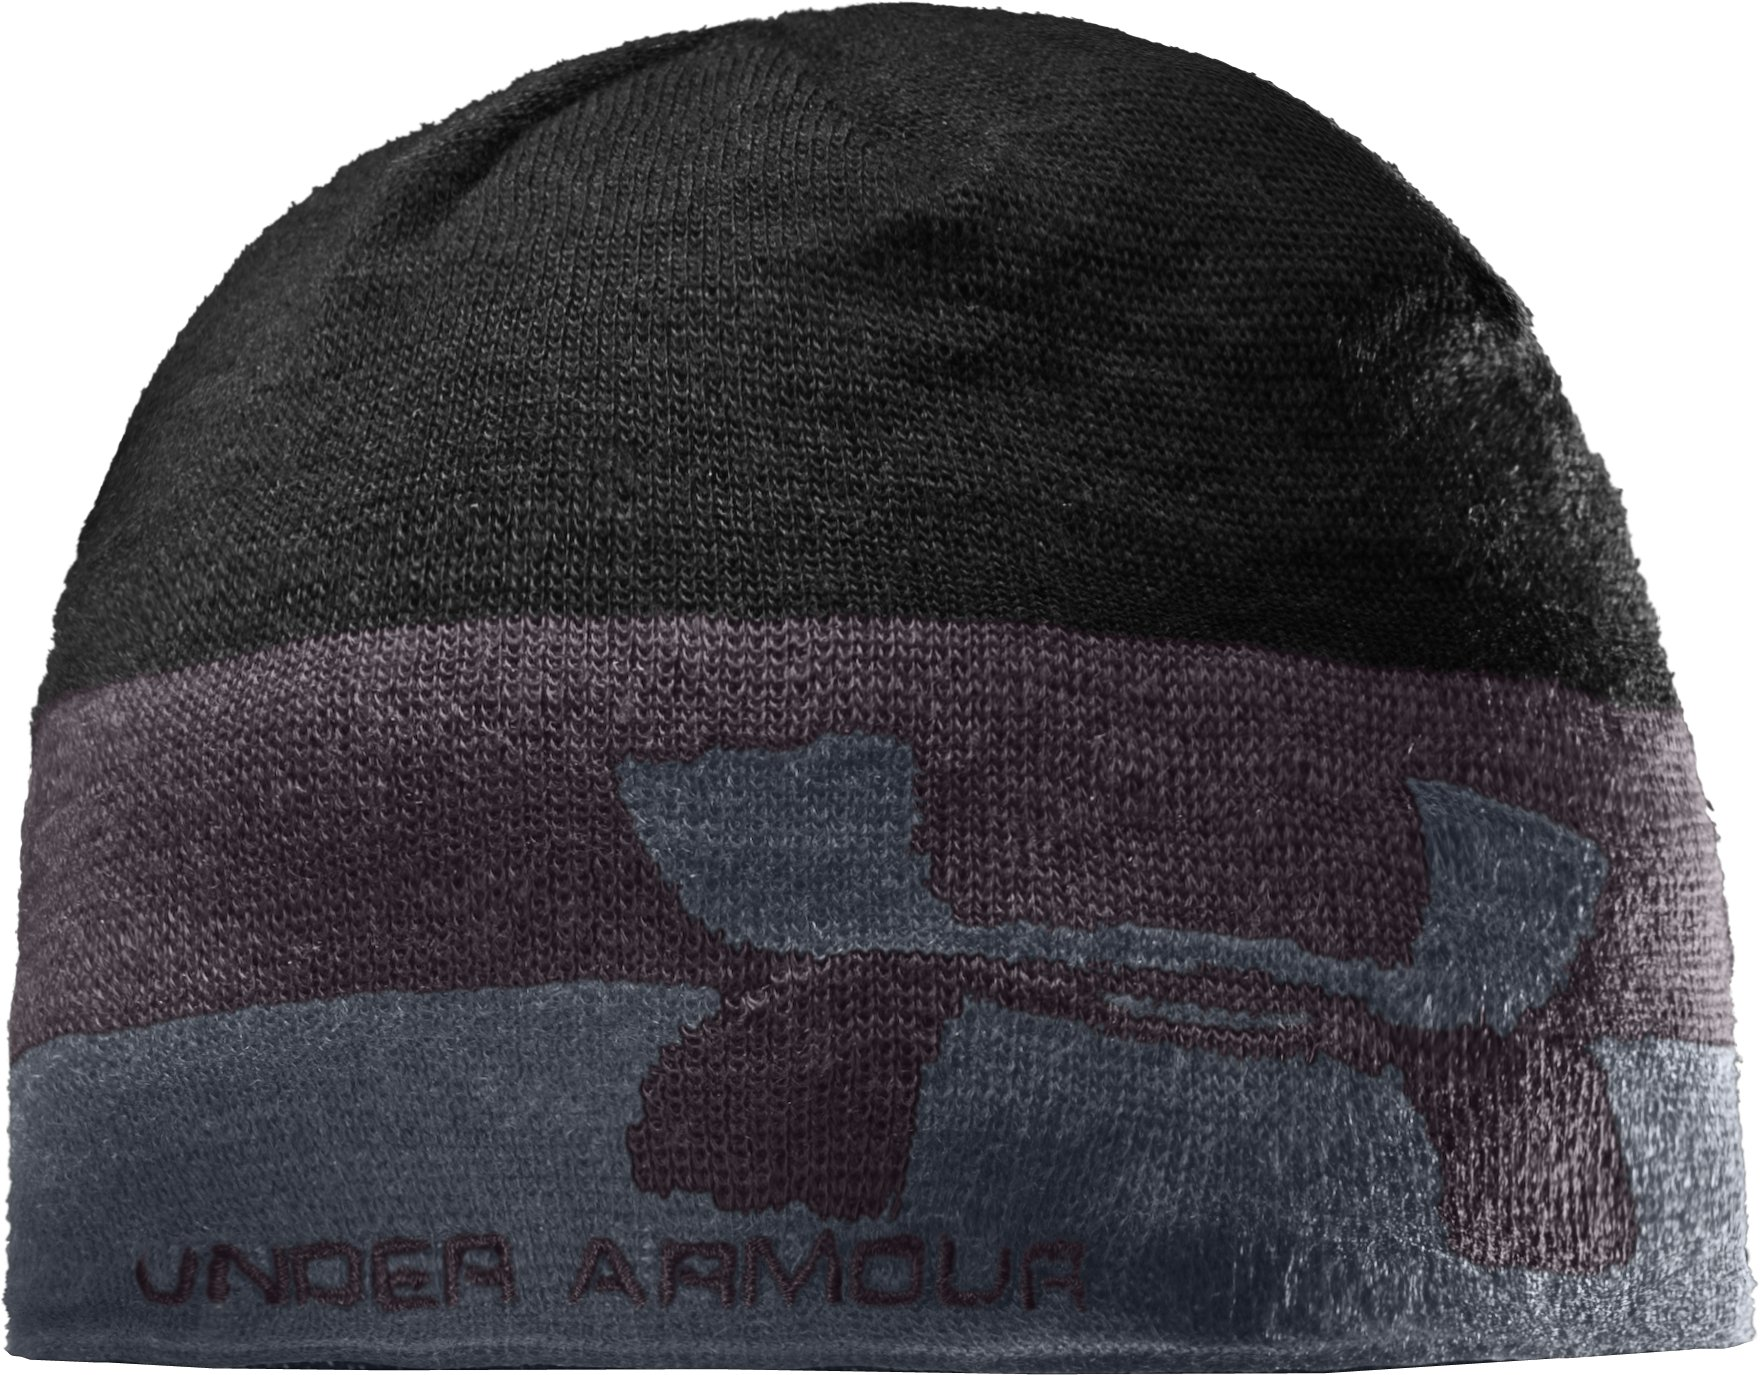 Men's Zone Beanie, Black